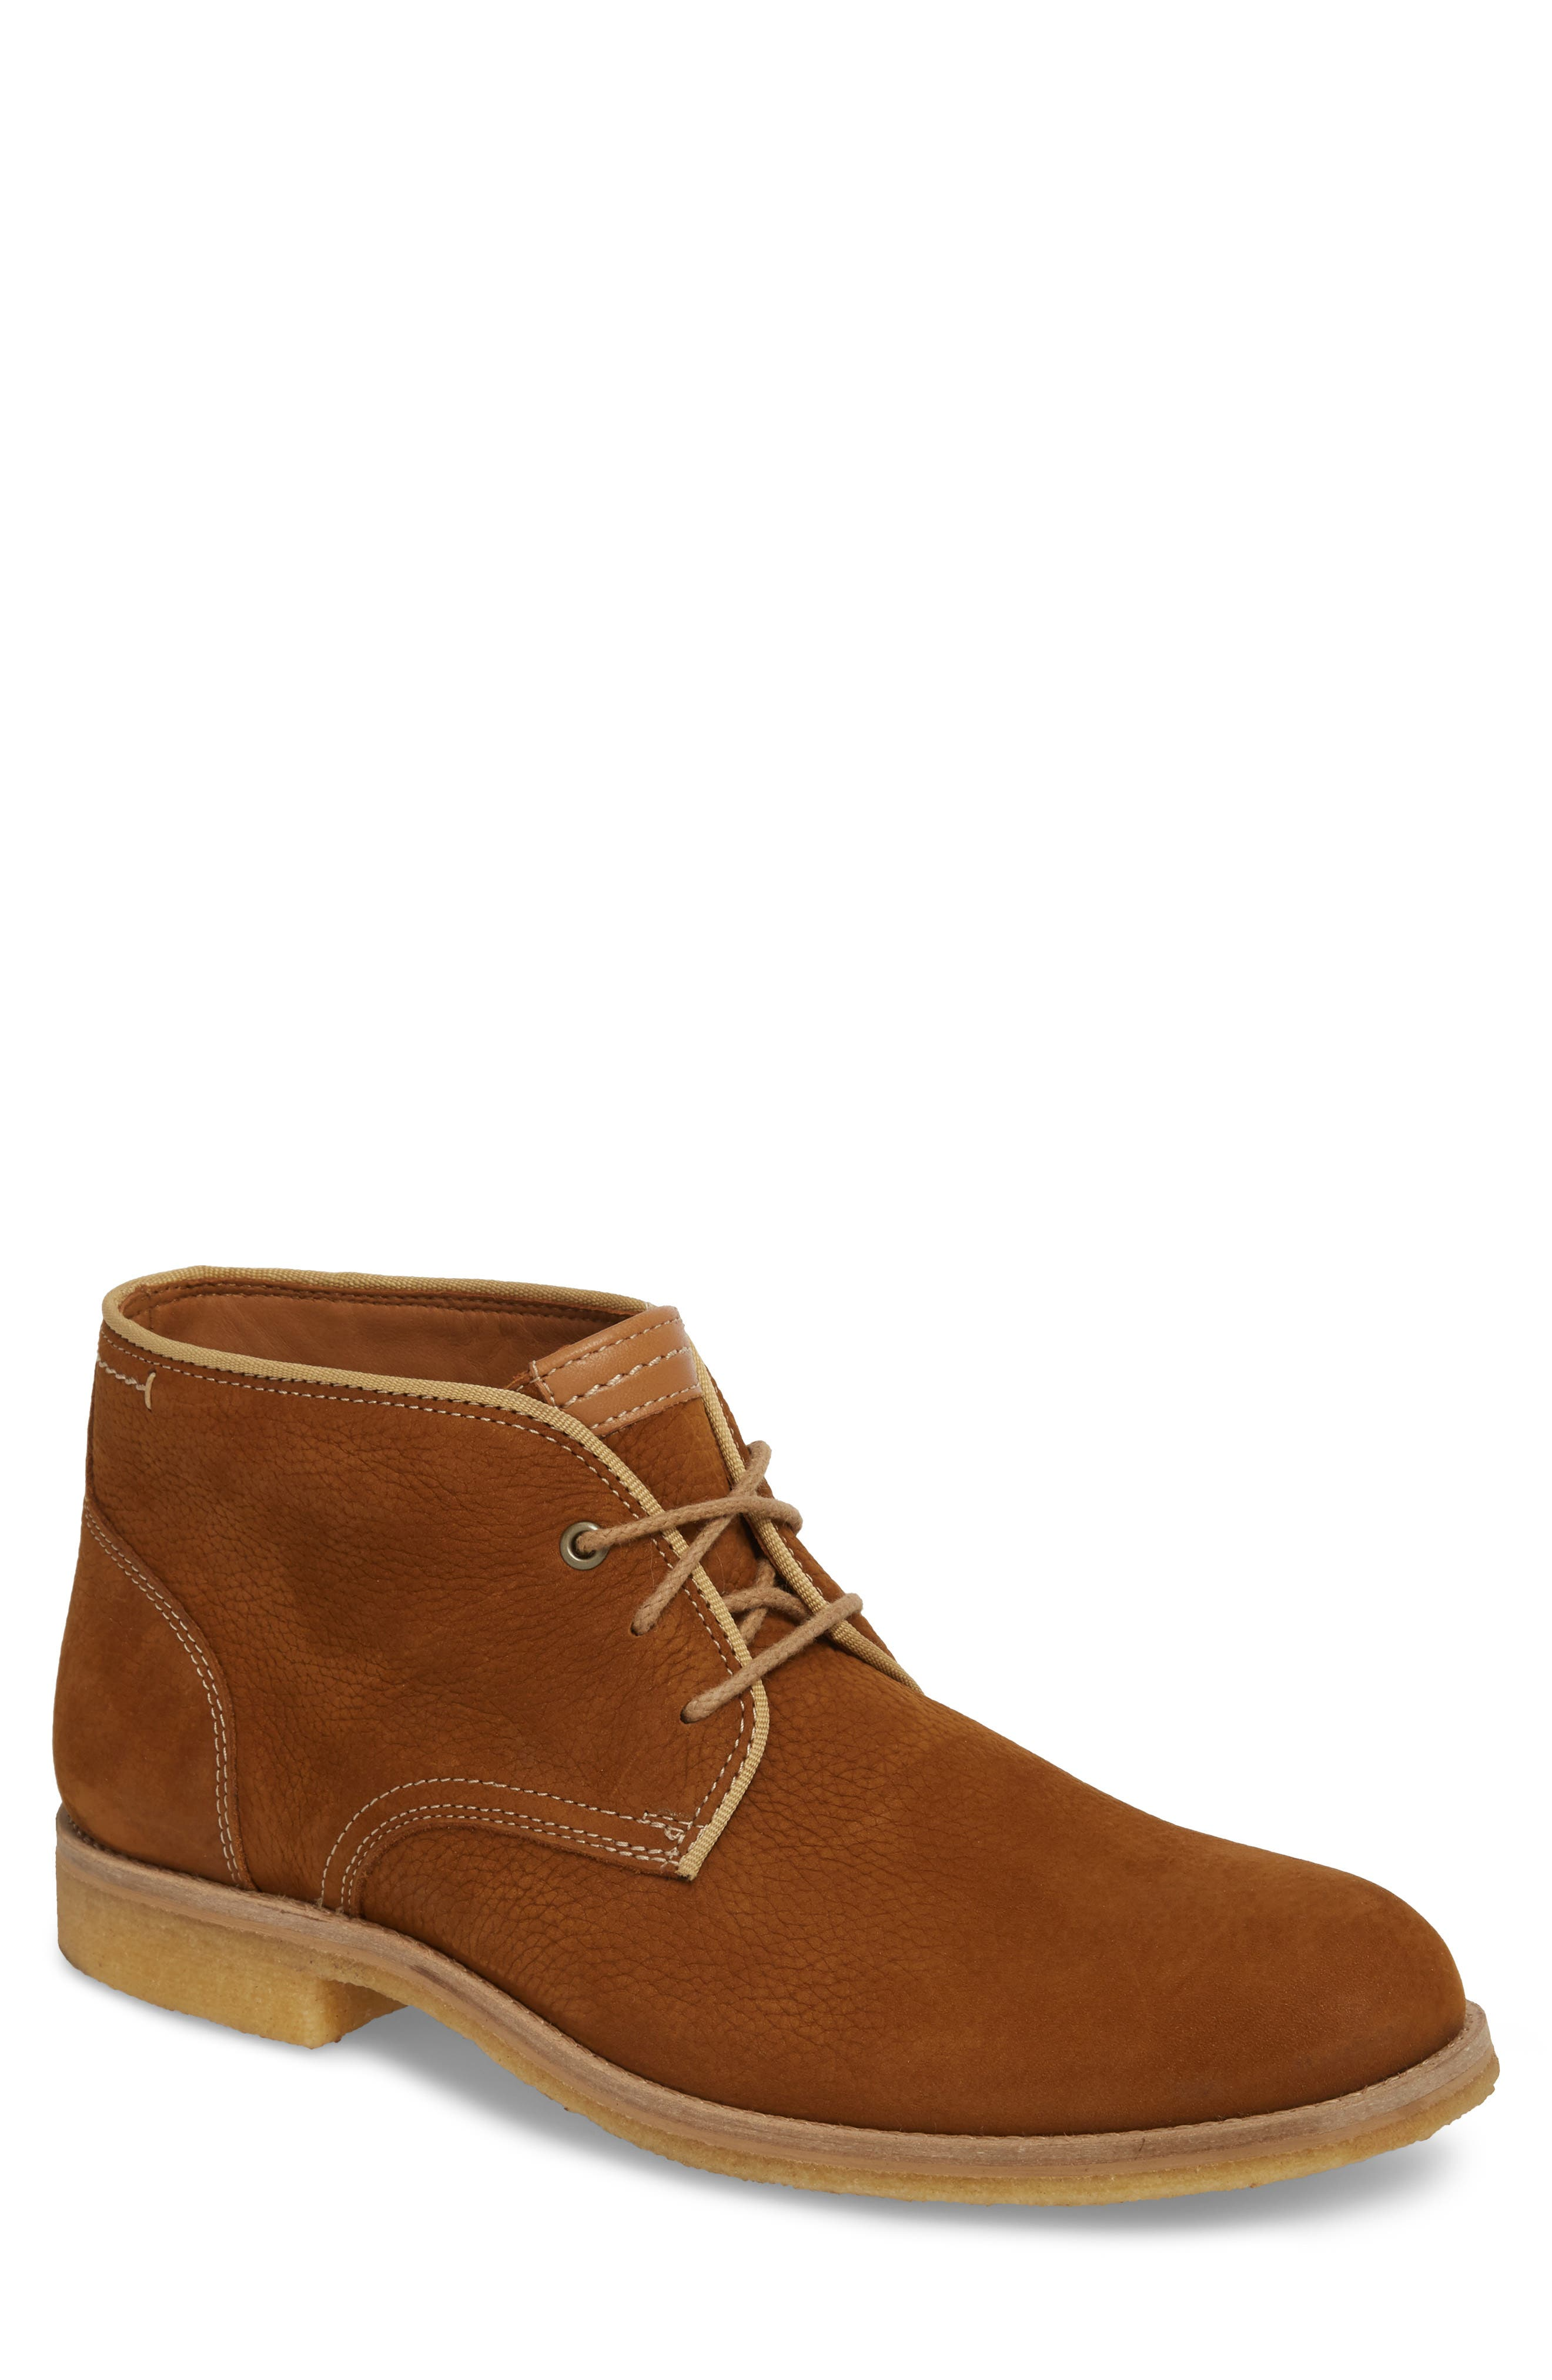 Howell Water Resistant Chukka Boot,                             Main thumbnail 1, color,                             Tan Nubuck Leather